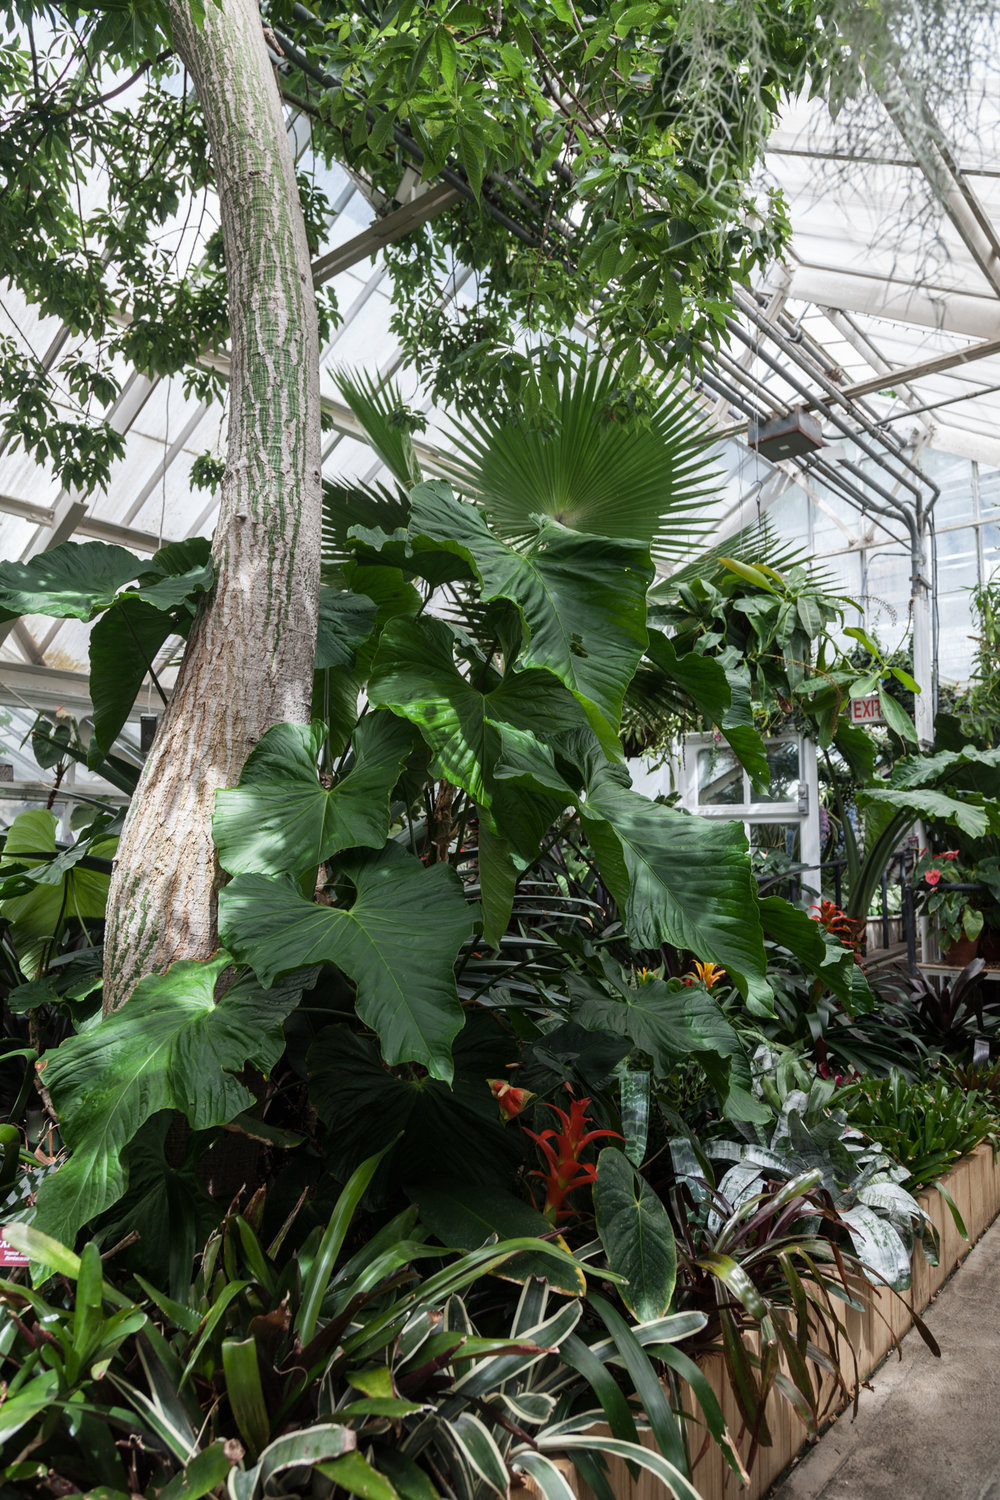 Palms, Philodendron, Anthurium and Bromeliad abound in one of the many greenhouses at Planting Fields